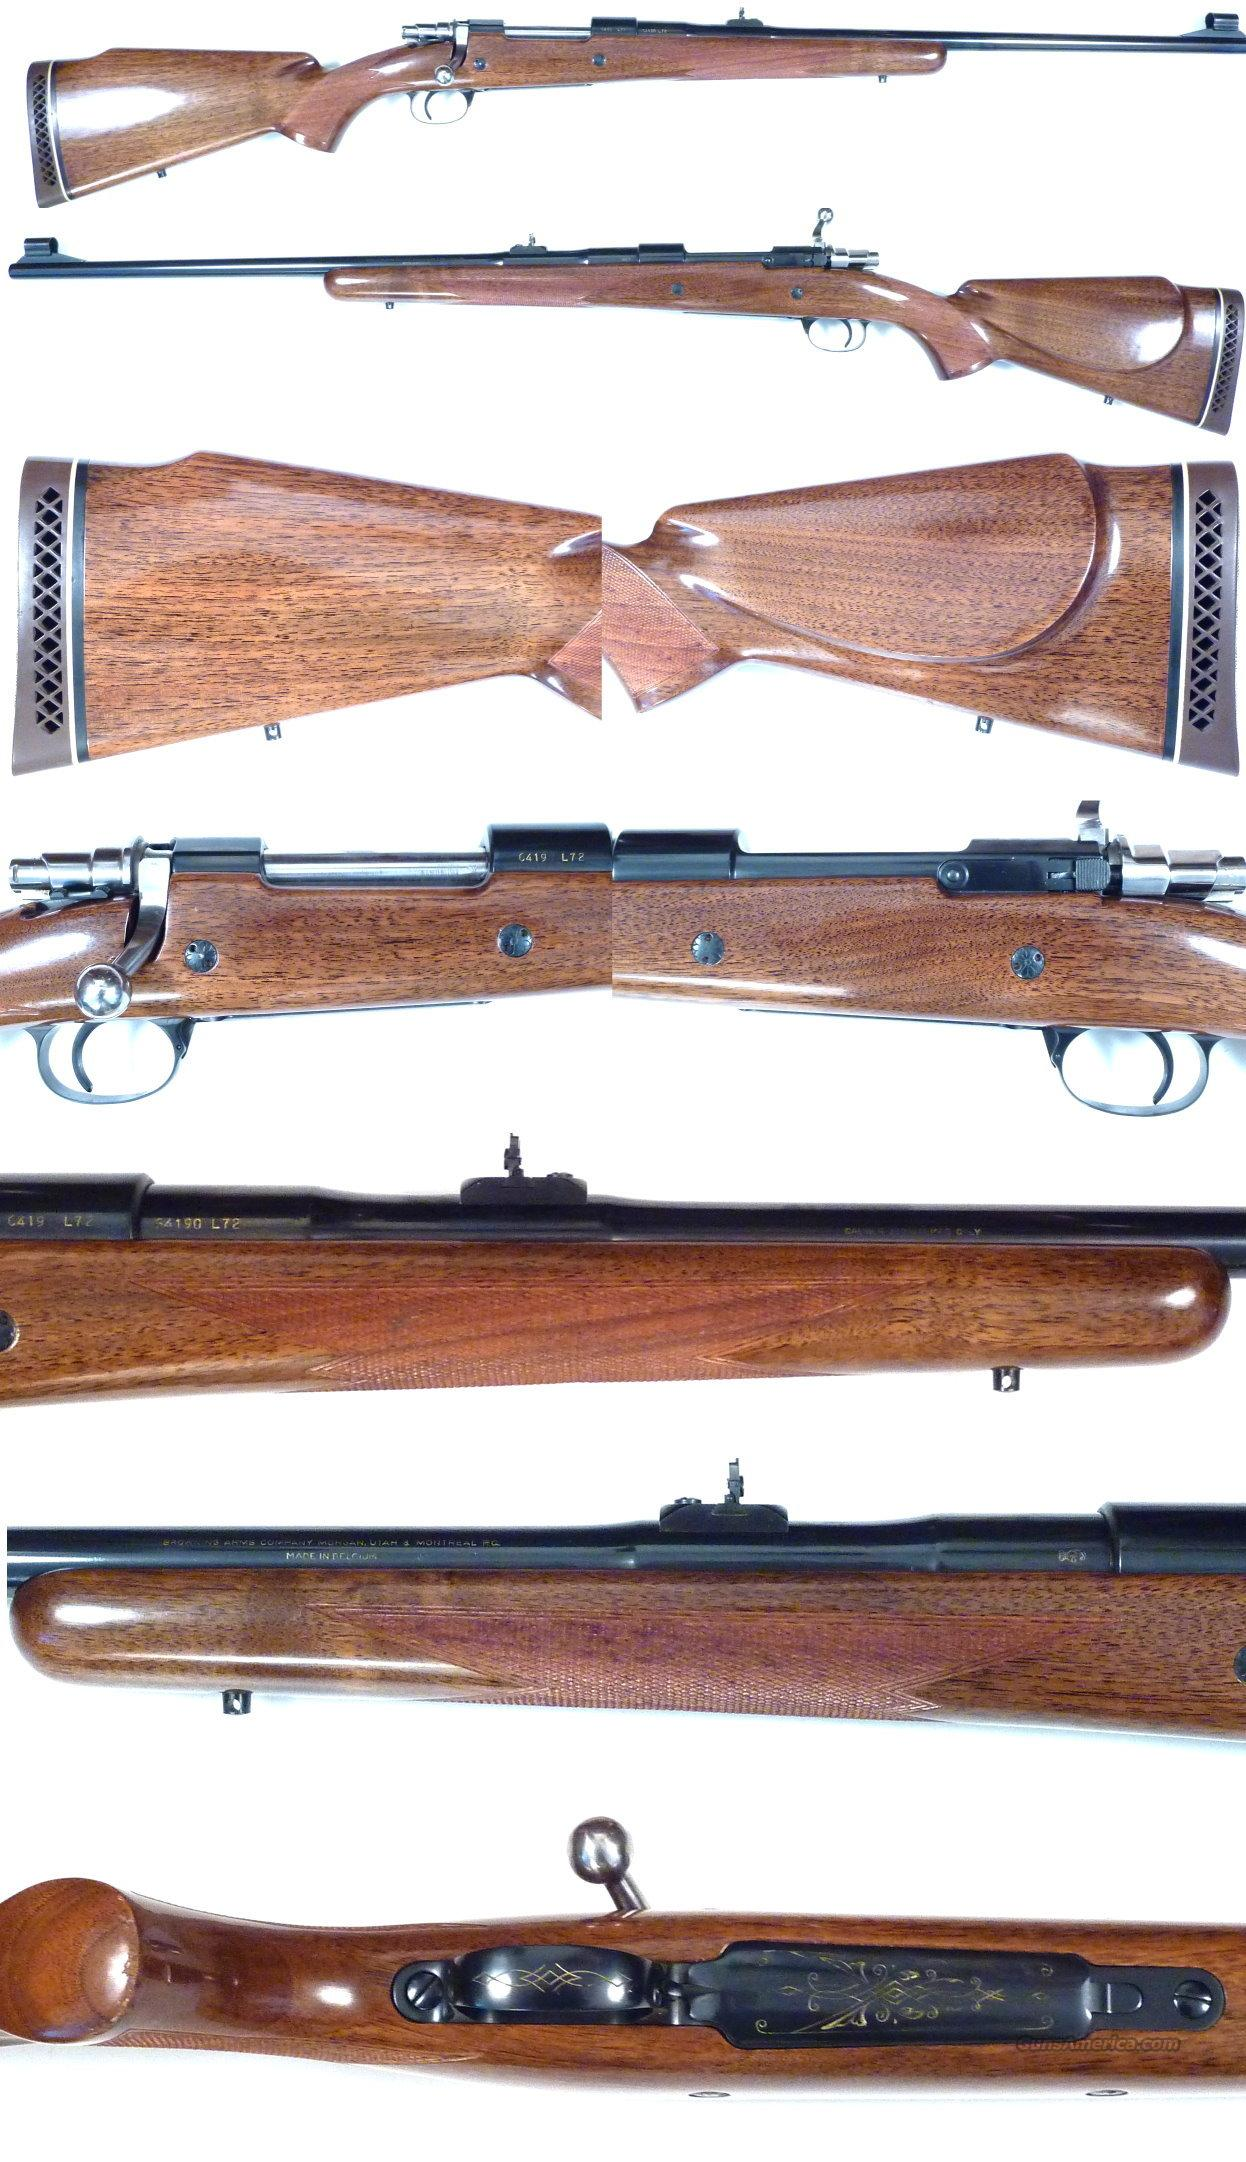 '72 Belgium Browning 338 Safari Grade  Guns > Rifles > Browning Rifles > Bolt Action > Hunting > Blue